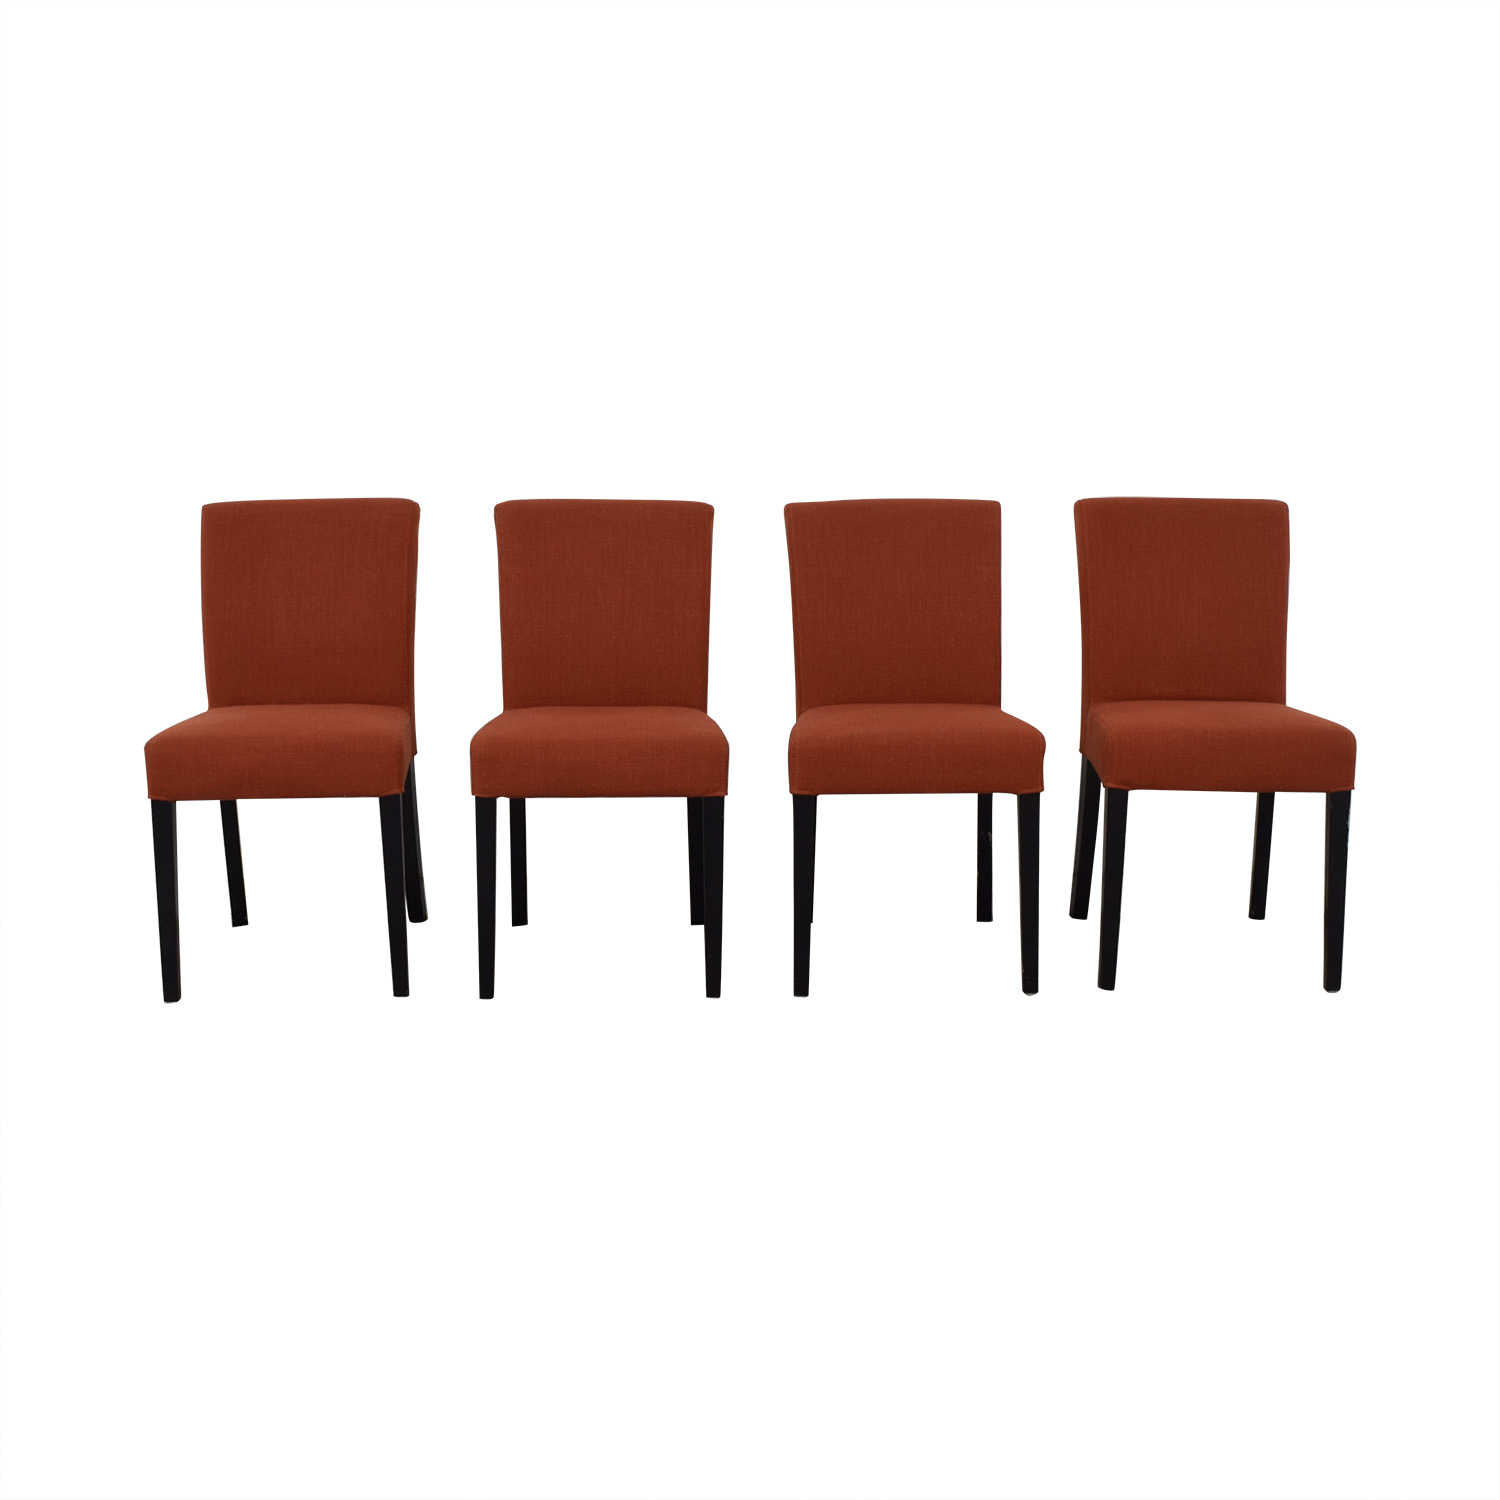 shop Crate & Barrel Lowe Persimmon Upholstered Dining Chairs Crate & Barrel